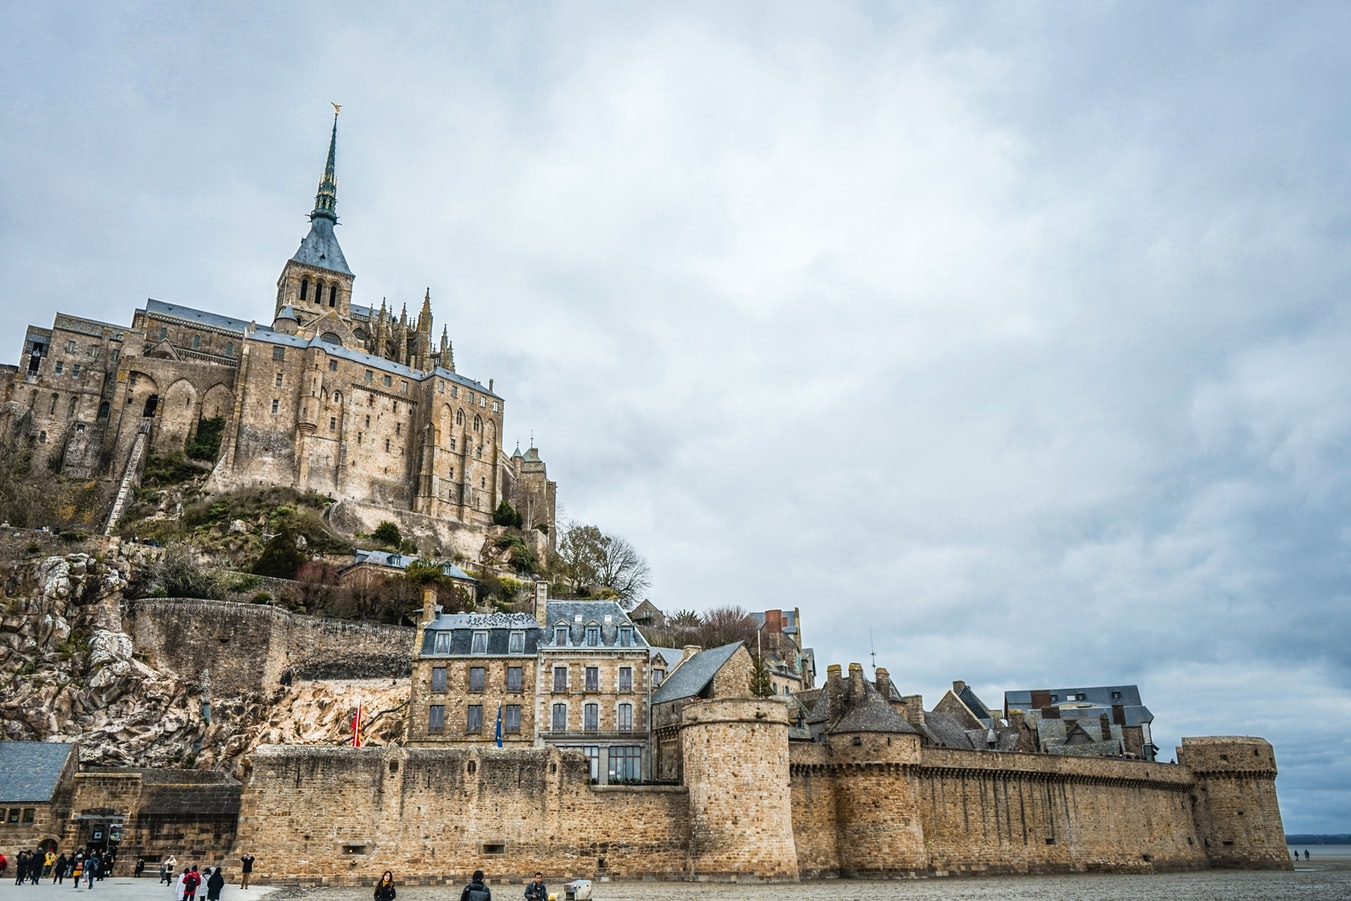 le mont saint michel in france, normandy region in france